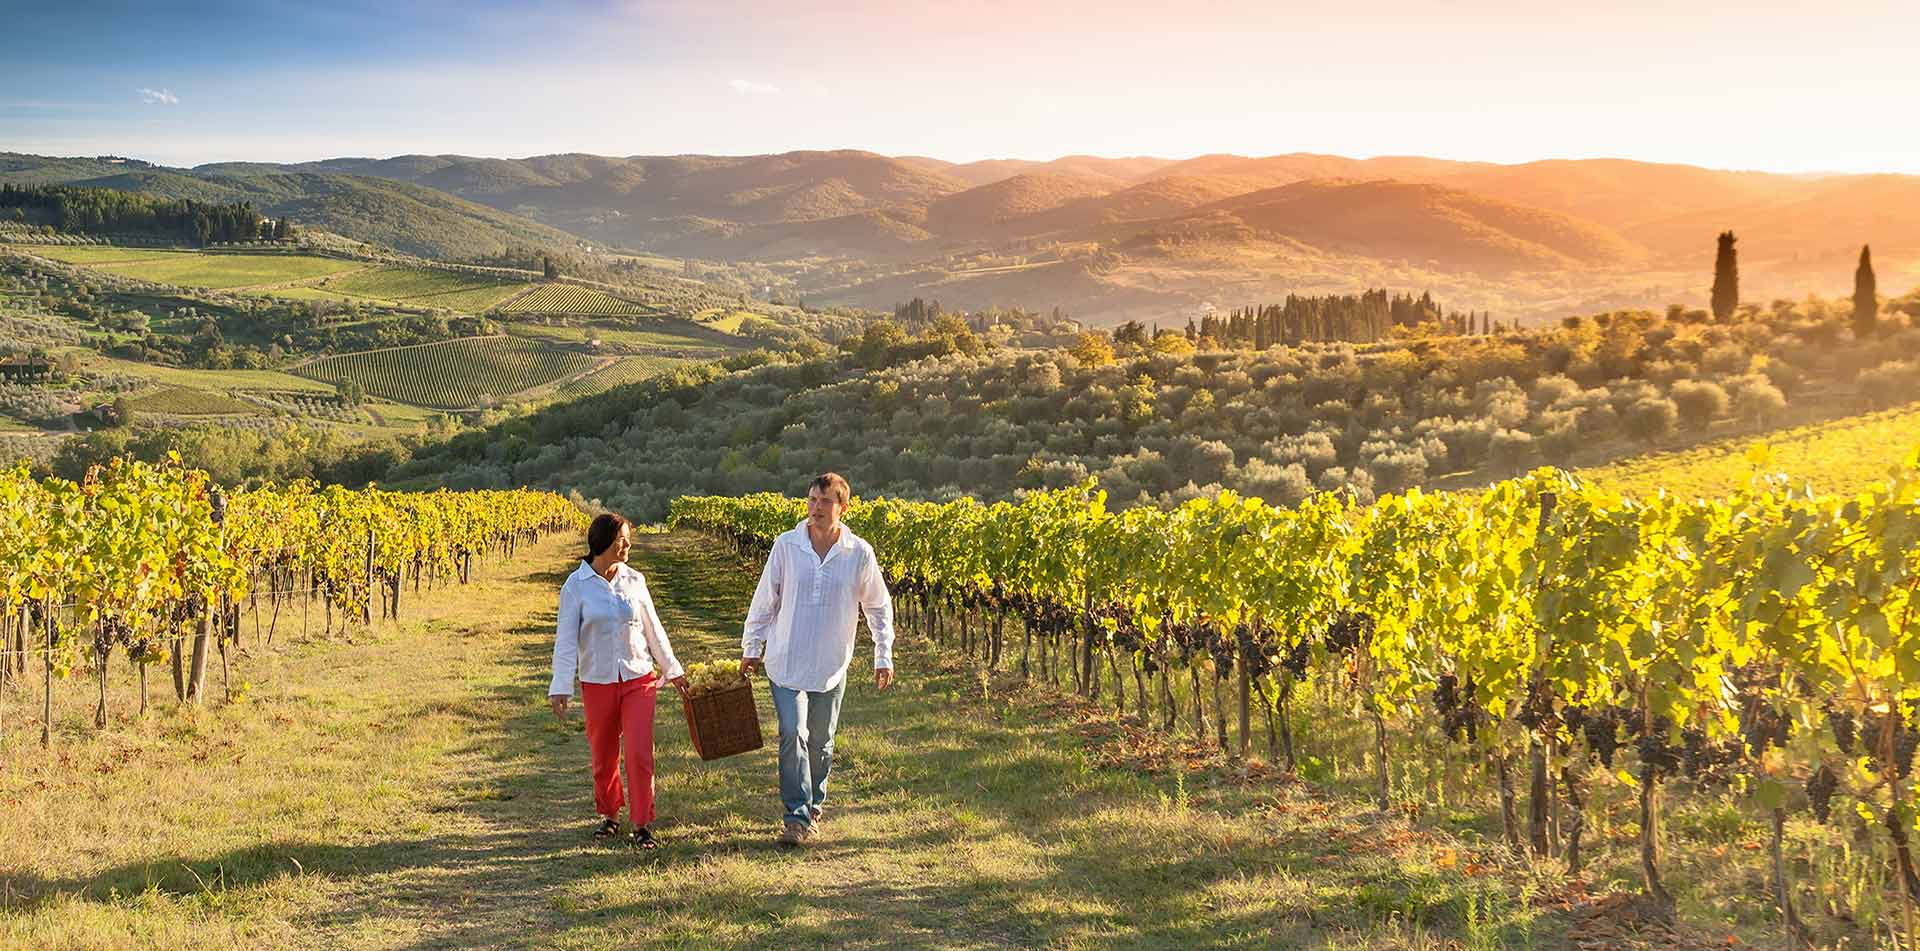 North America United States California Napa Sonoma couple vineyard walk harvest grapes wine - luxury vacation destinations